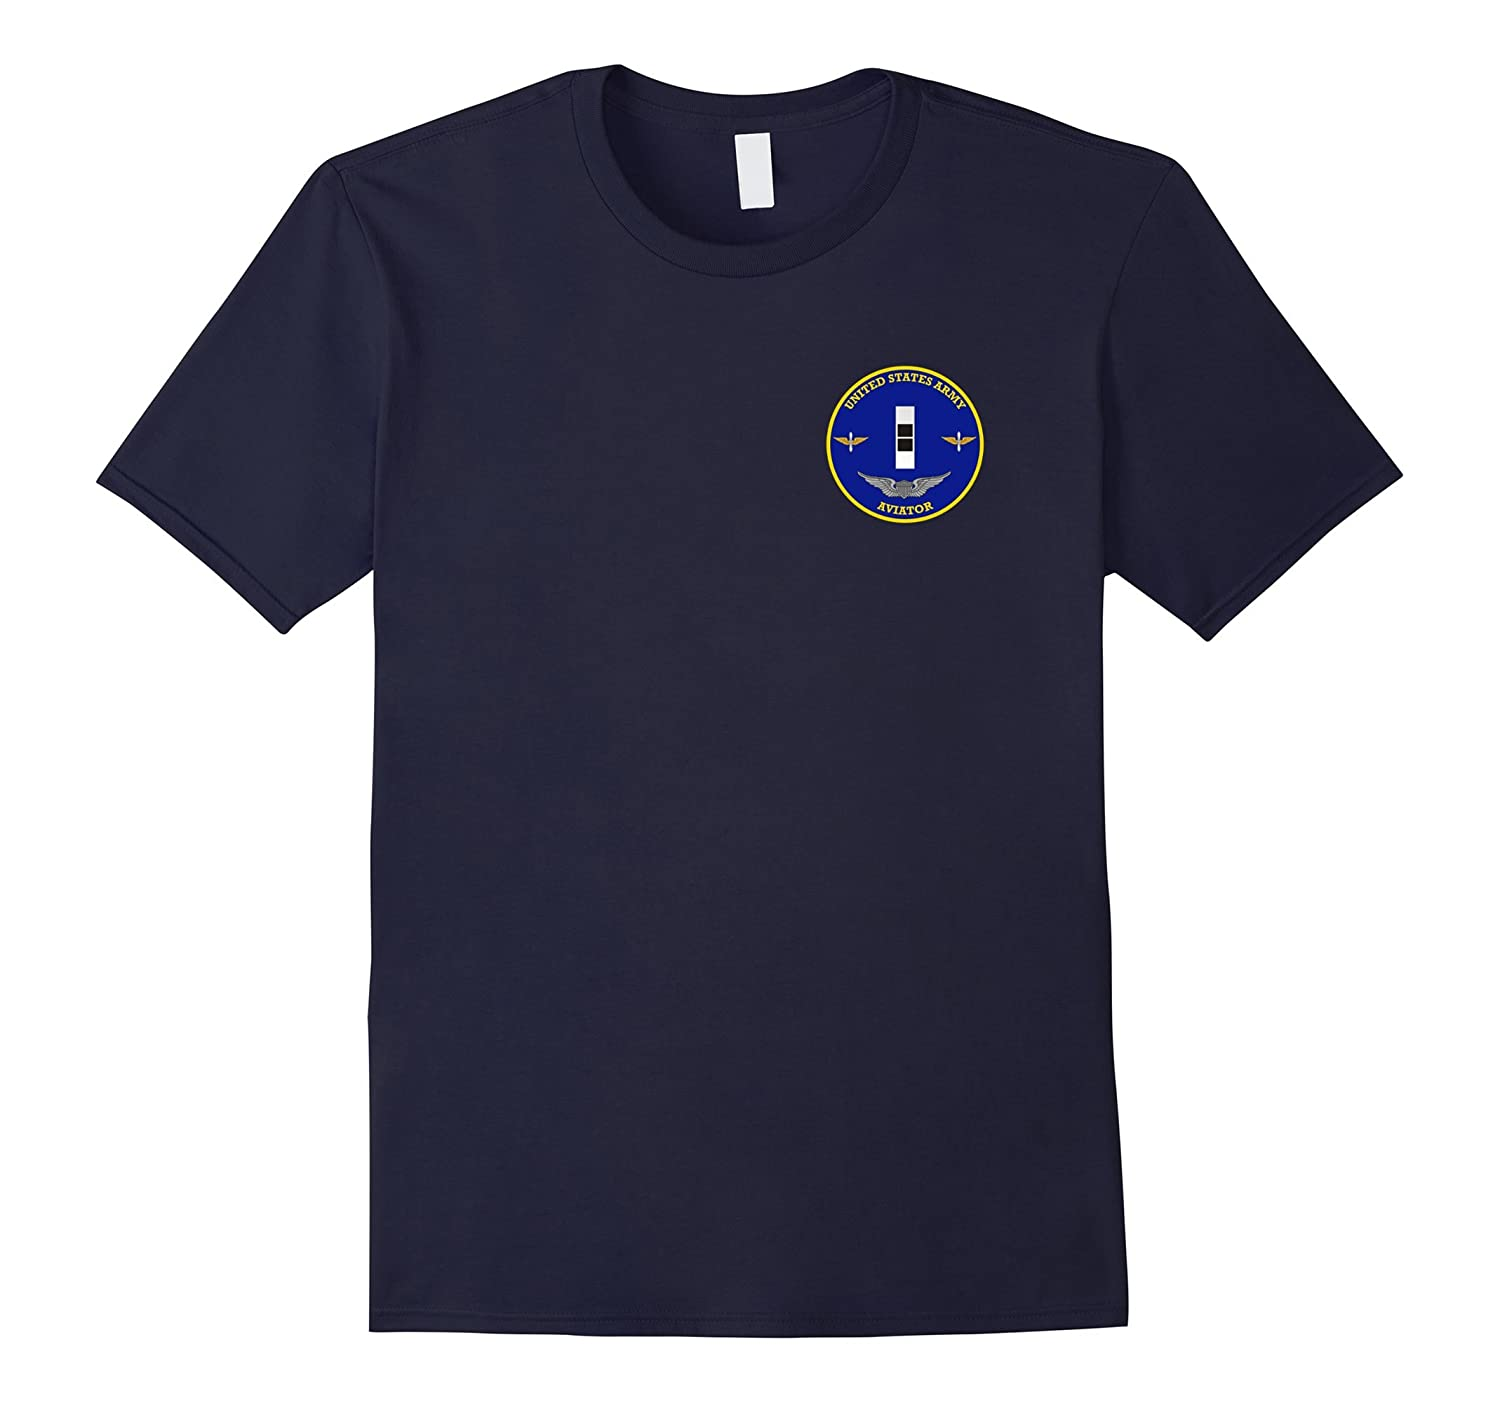 ARMY AVIATION CWO-2 PILOT T-SHIRT, ARMY AVIATOR W-2-Art